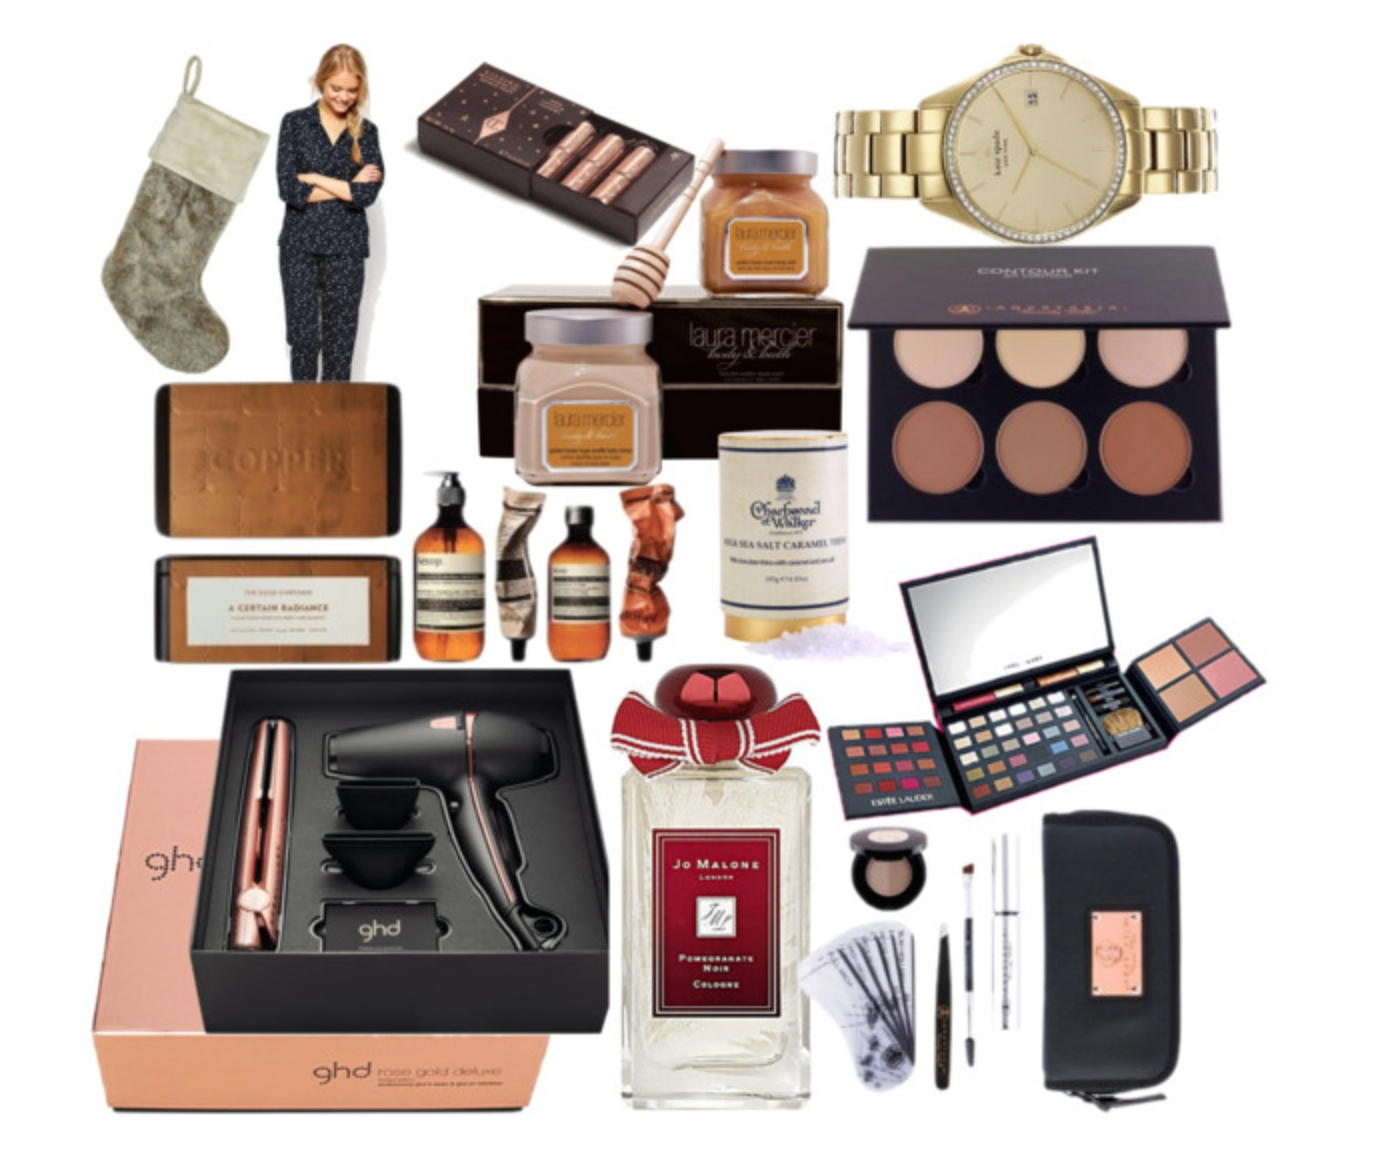 Gifts For Her For Christmas: Christmas Gift Guide: Luxury Gifts & Stocking Fillers For